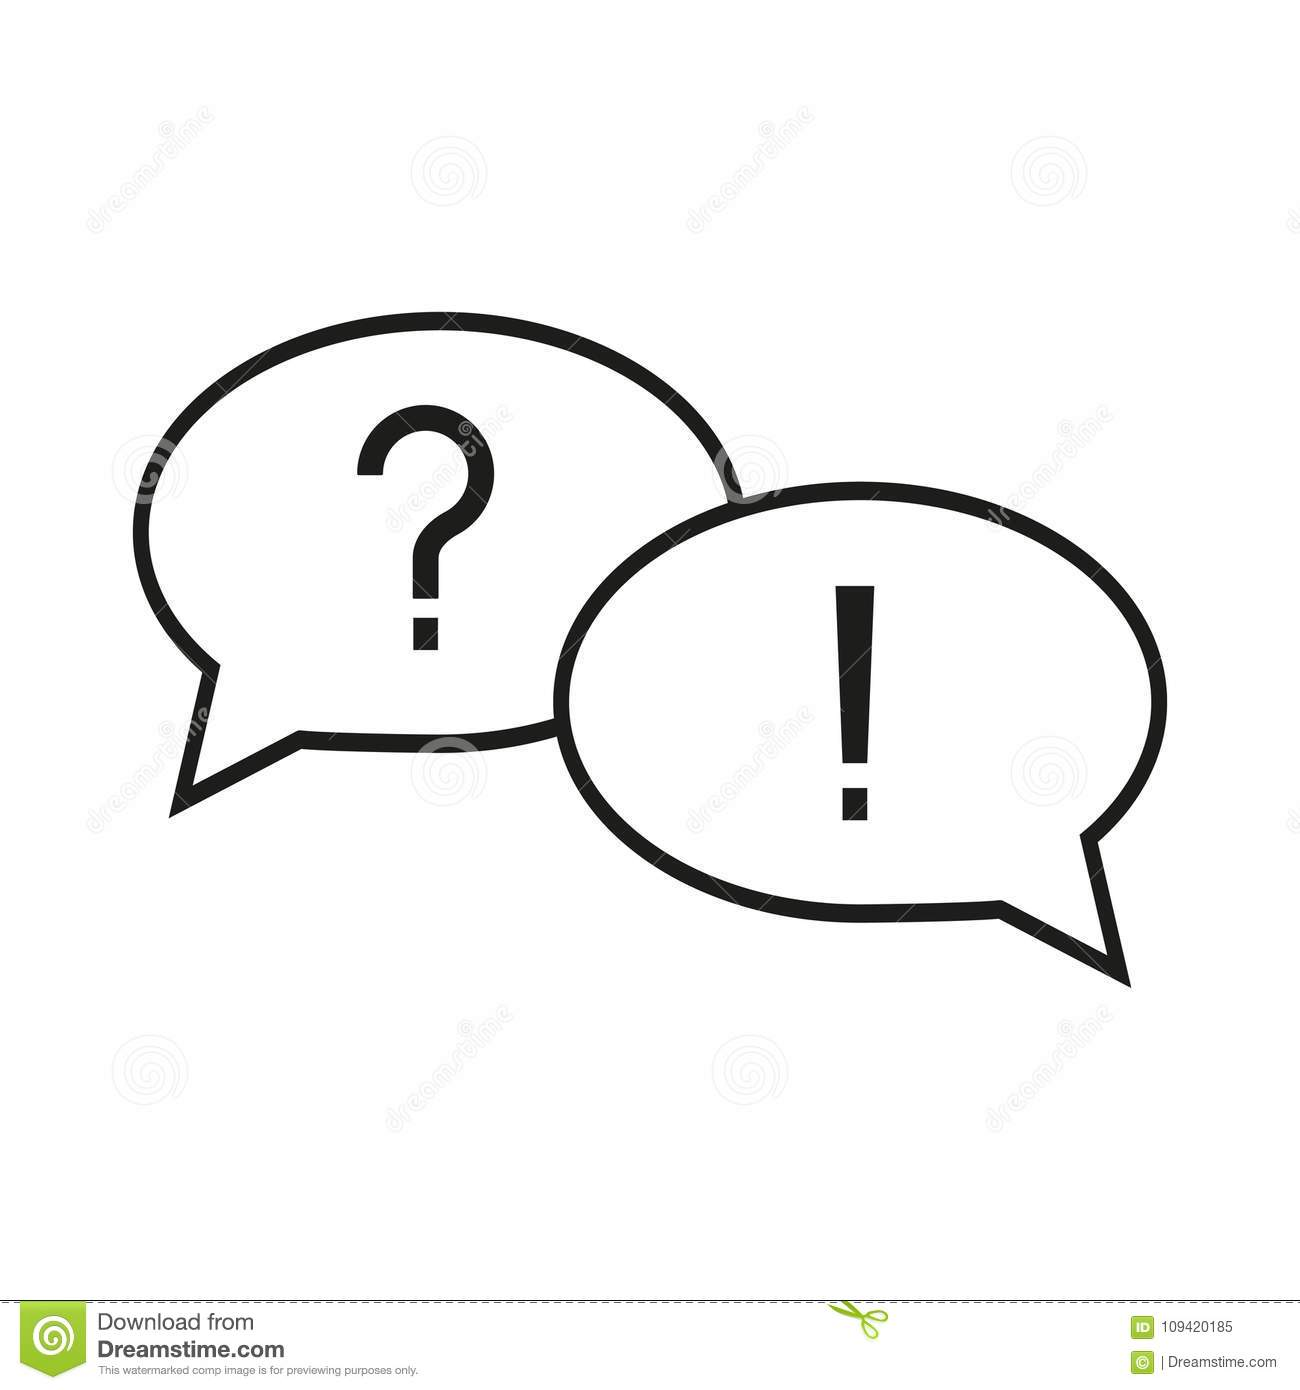 Question and answer icon stock vector. Illustration of